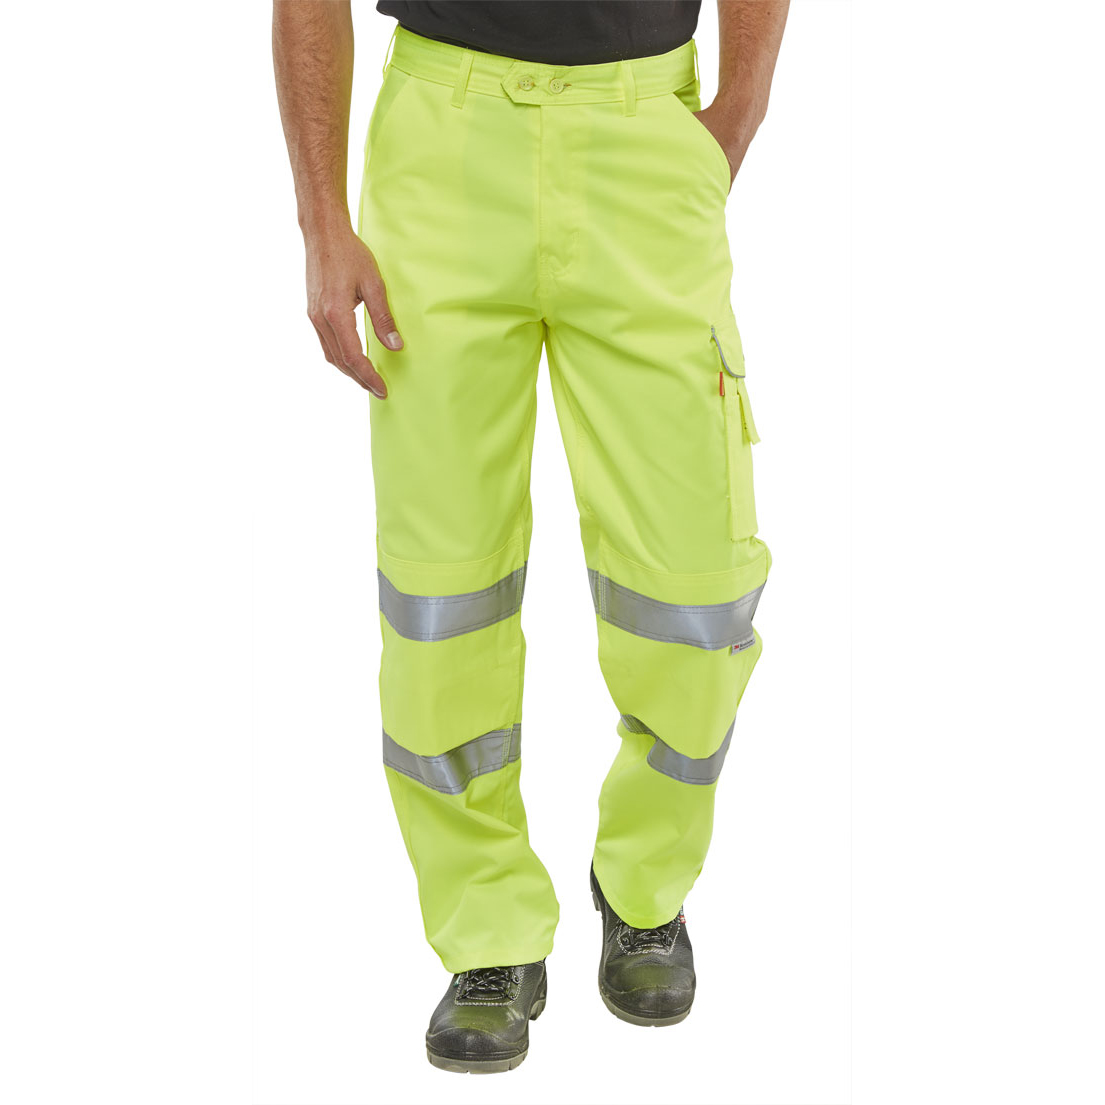 BSeen Trousers Polycotton Hi-Vis EN471 Saturn Yellow 38 Long Ref PCTENSY38T *Up to 3 Day Leadtime*